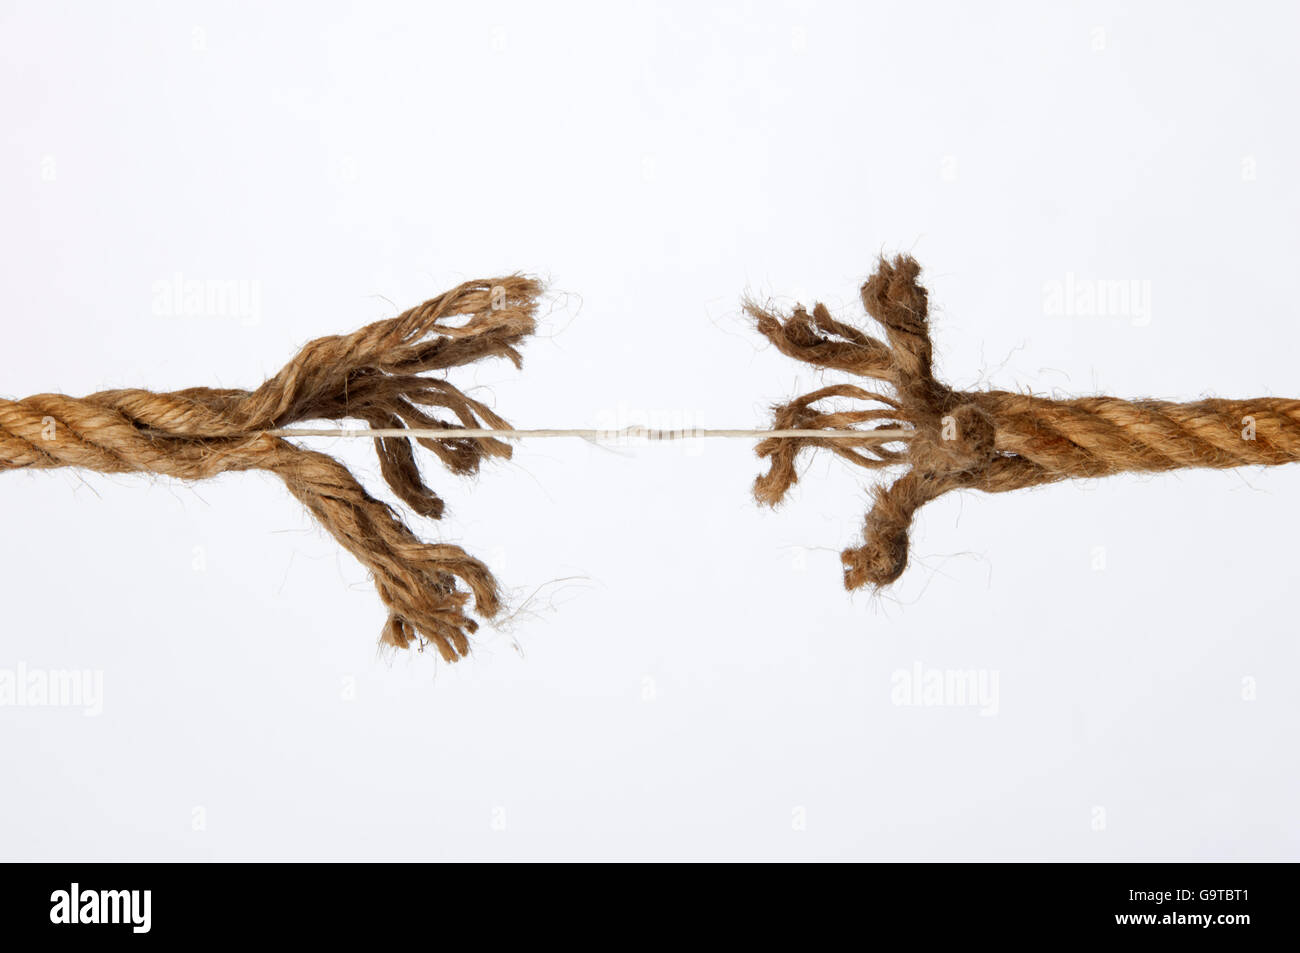 Frayed Wire Stock Photos & Frayed Wire Stock Images - Alamy